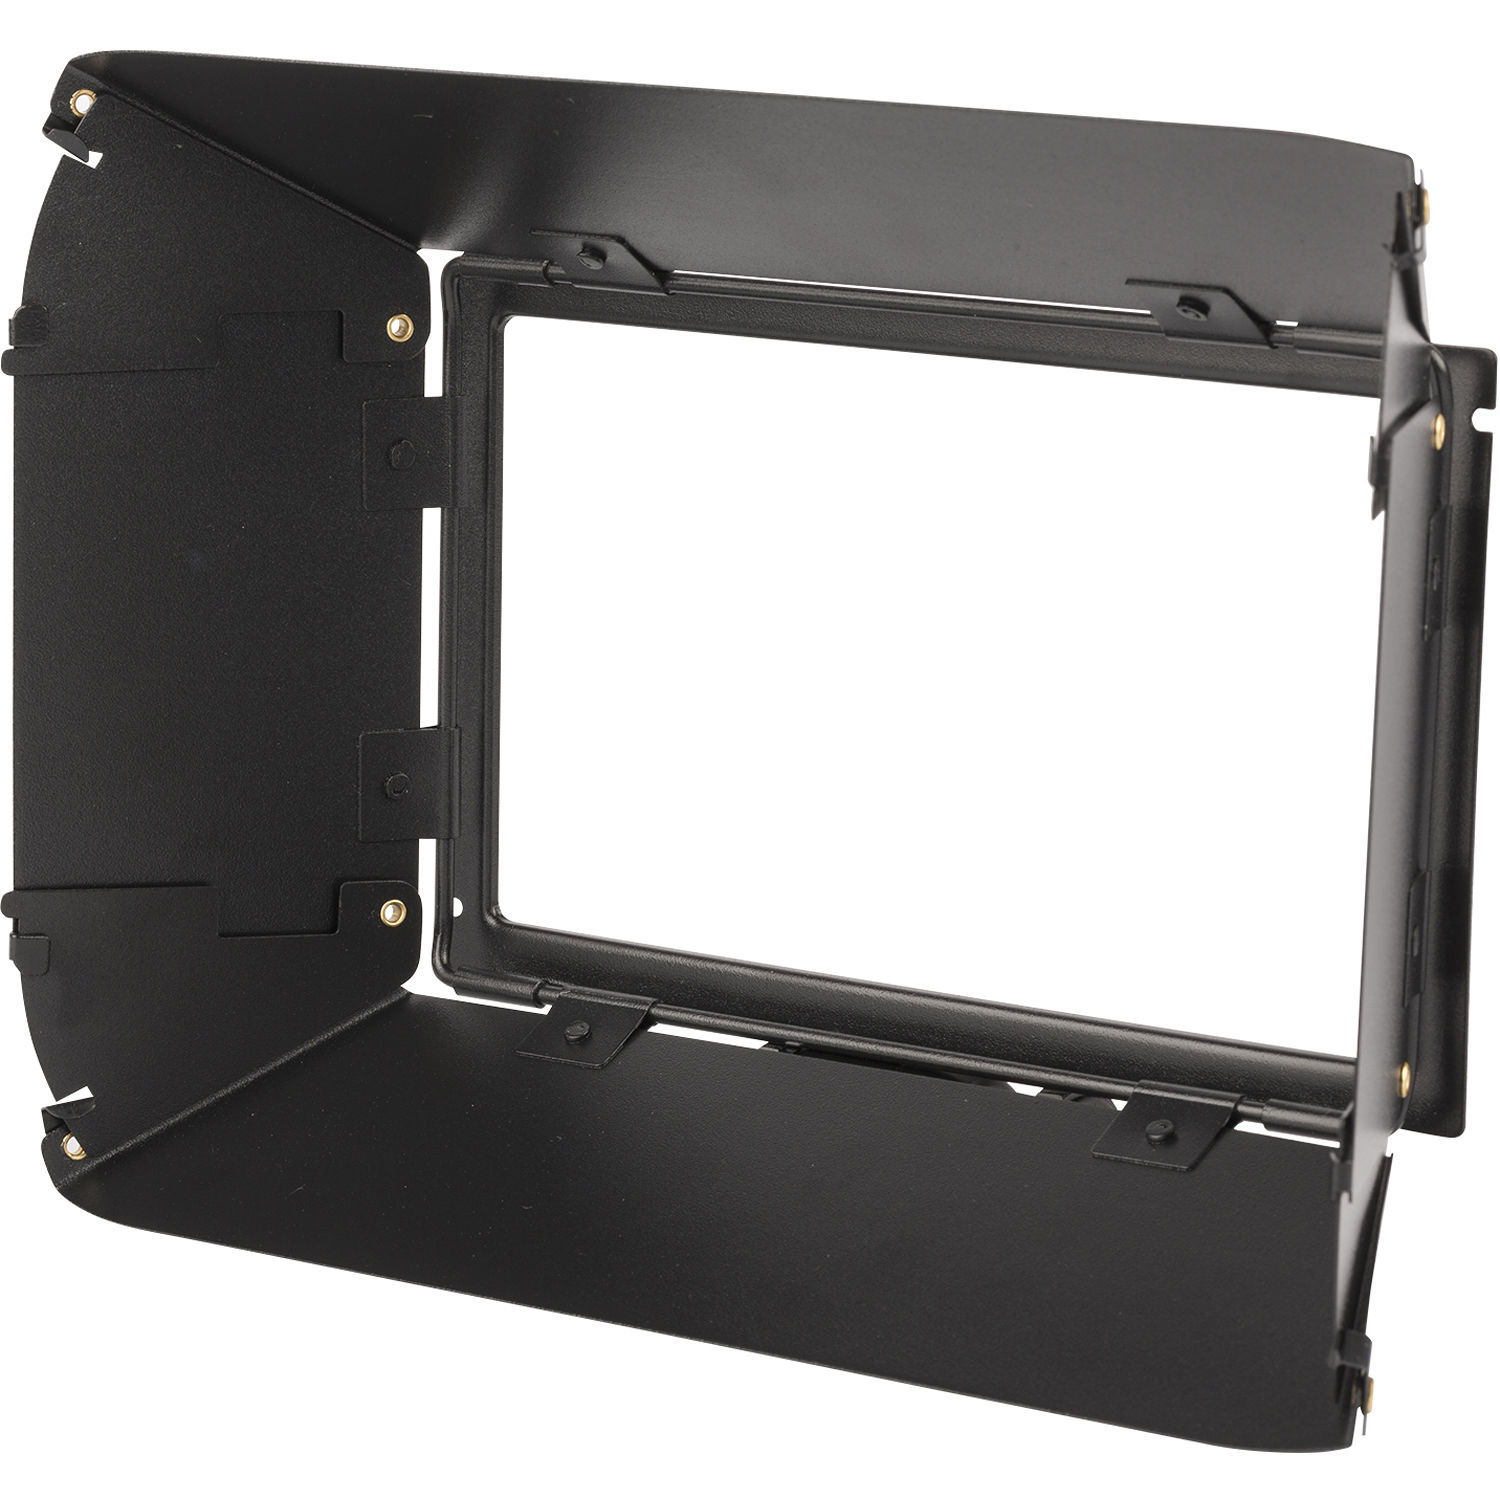 Ikan 4 Way Barn Door For Iled312 V2 Mb4 Lights Ioc Bd Bh